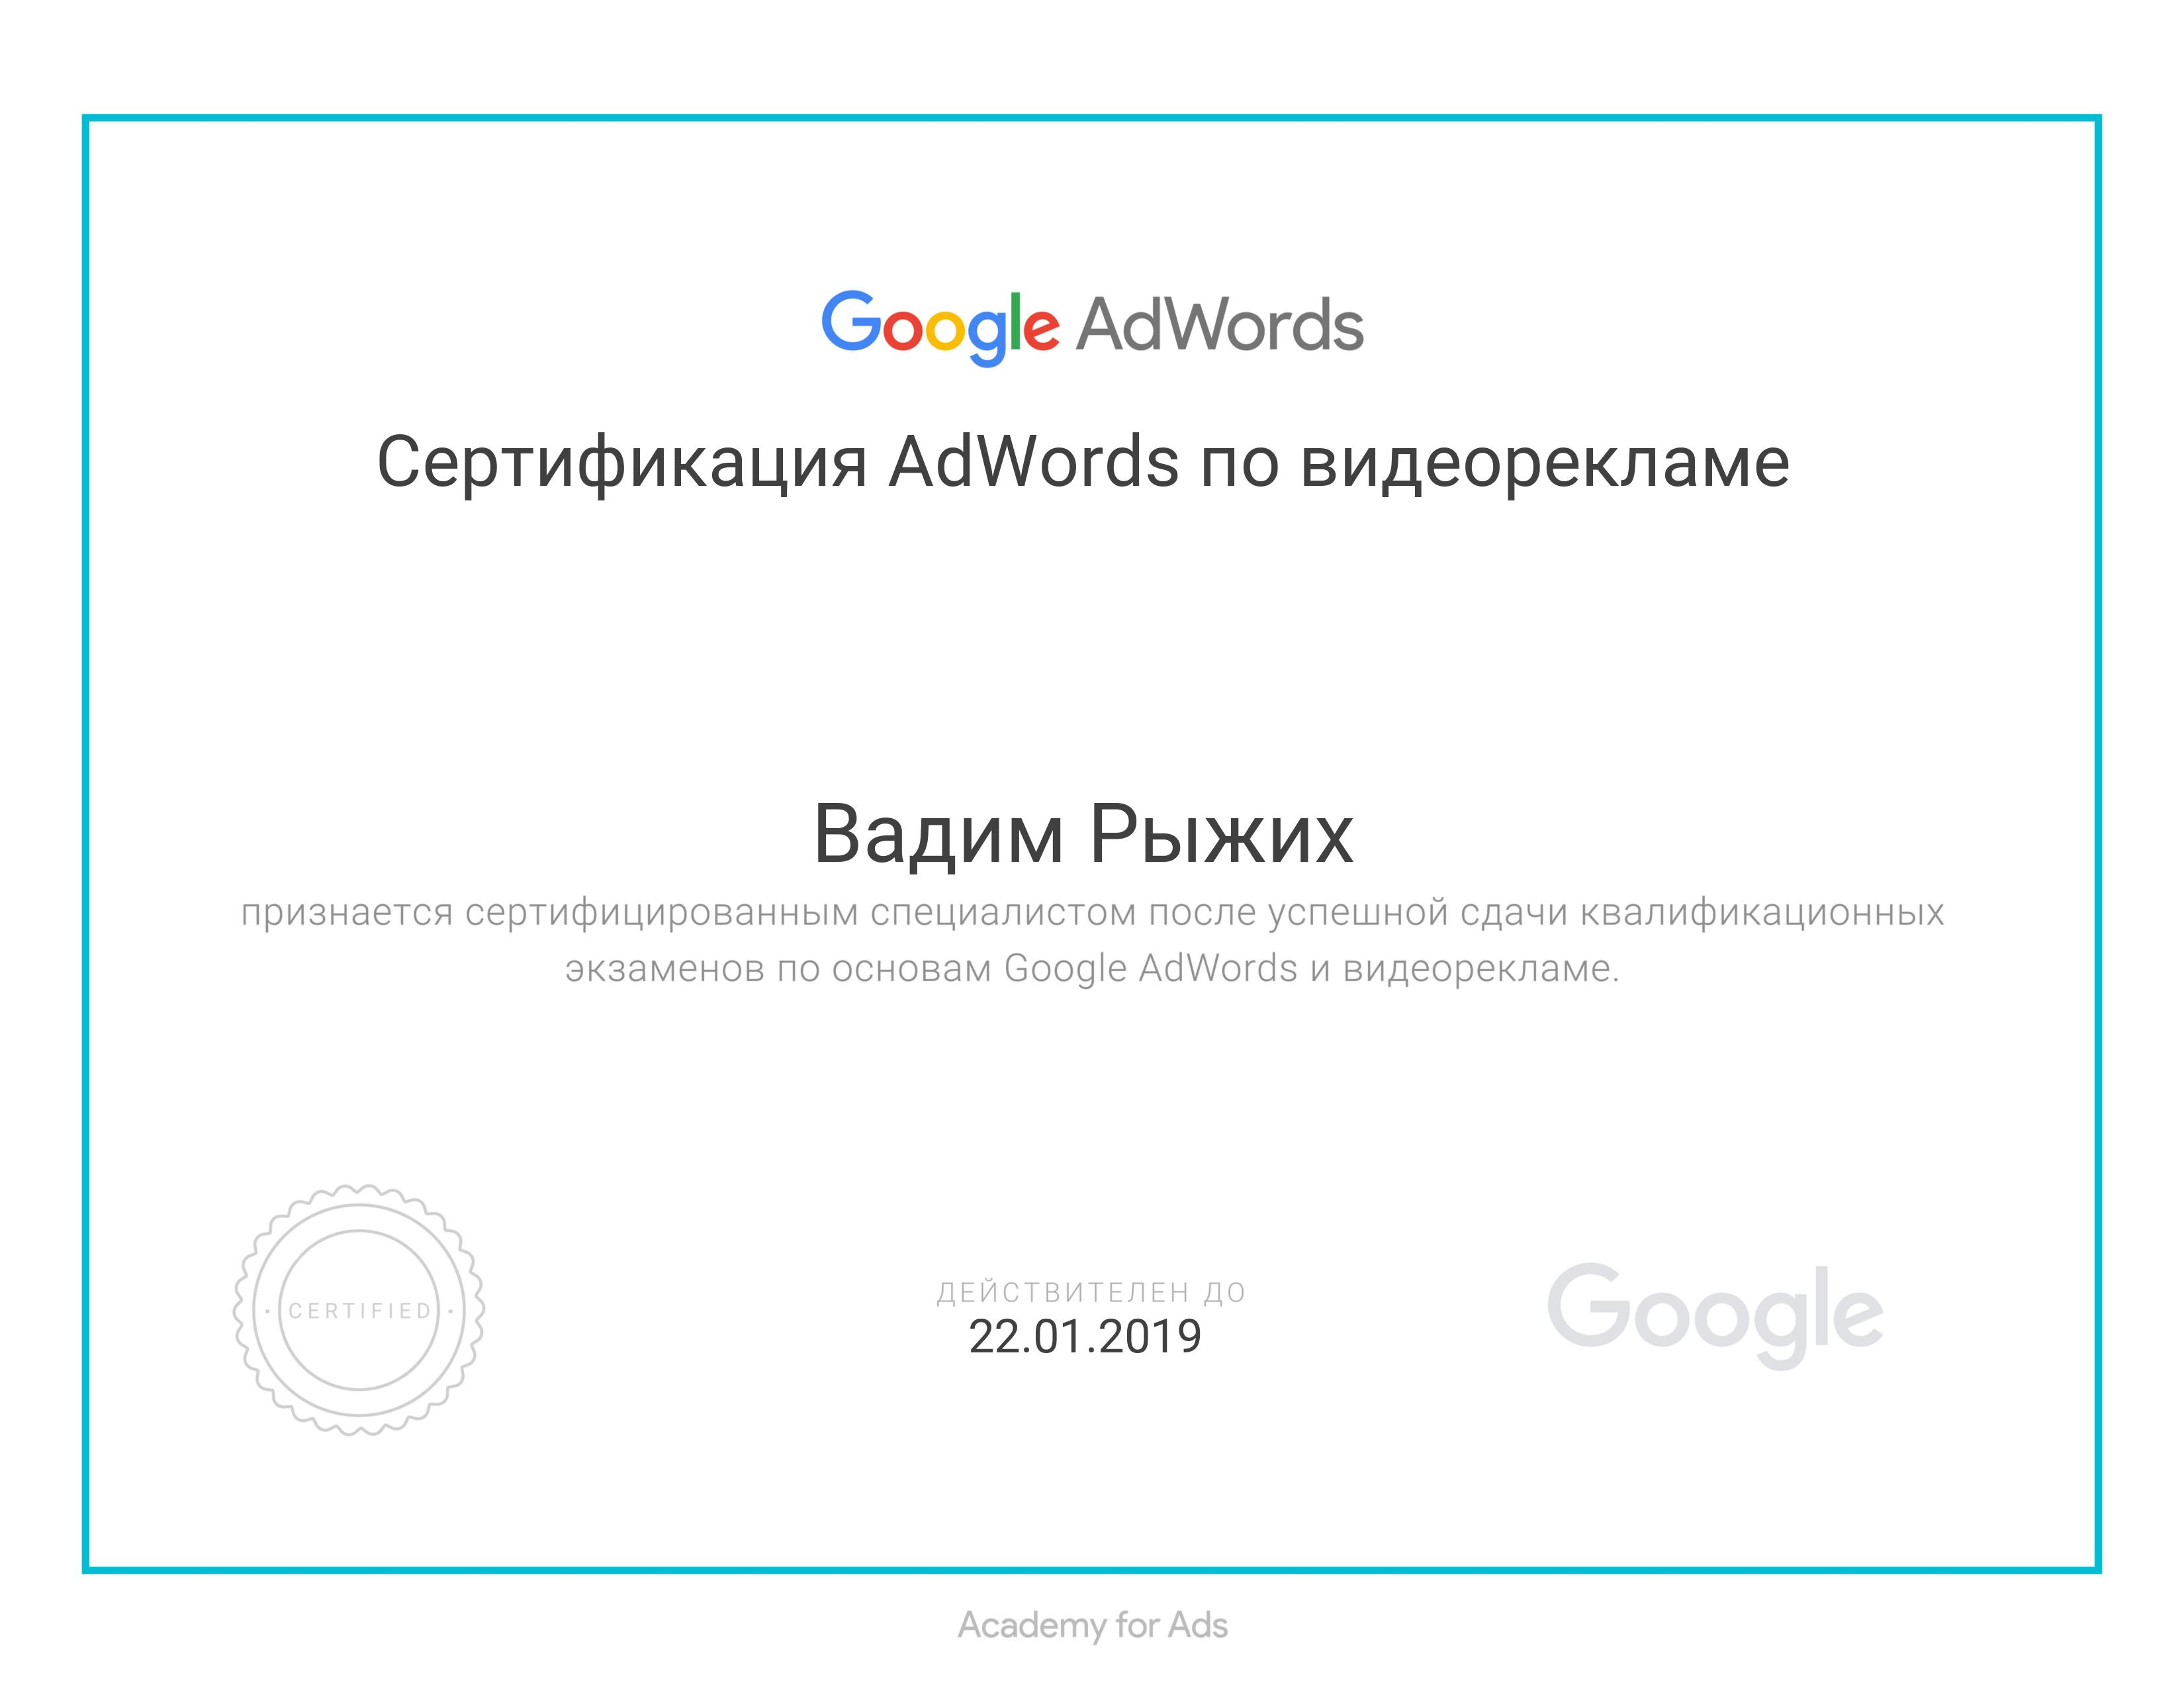 Vadym Logan – Google AdWords